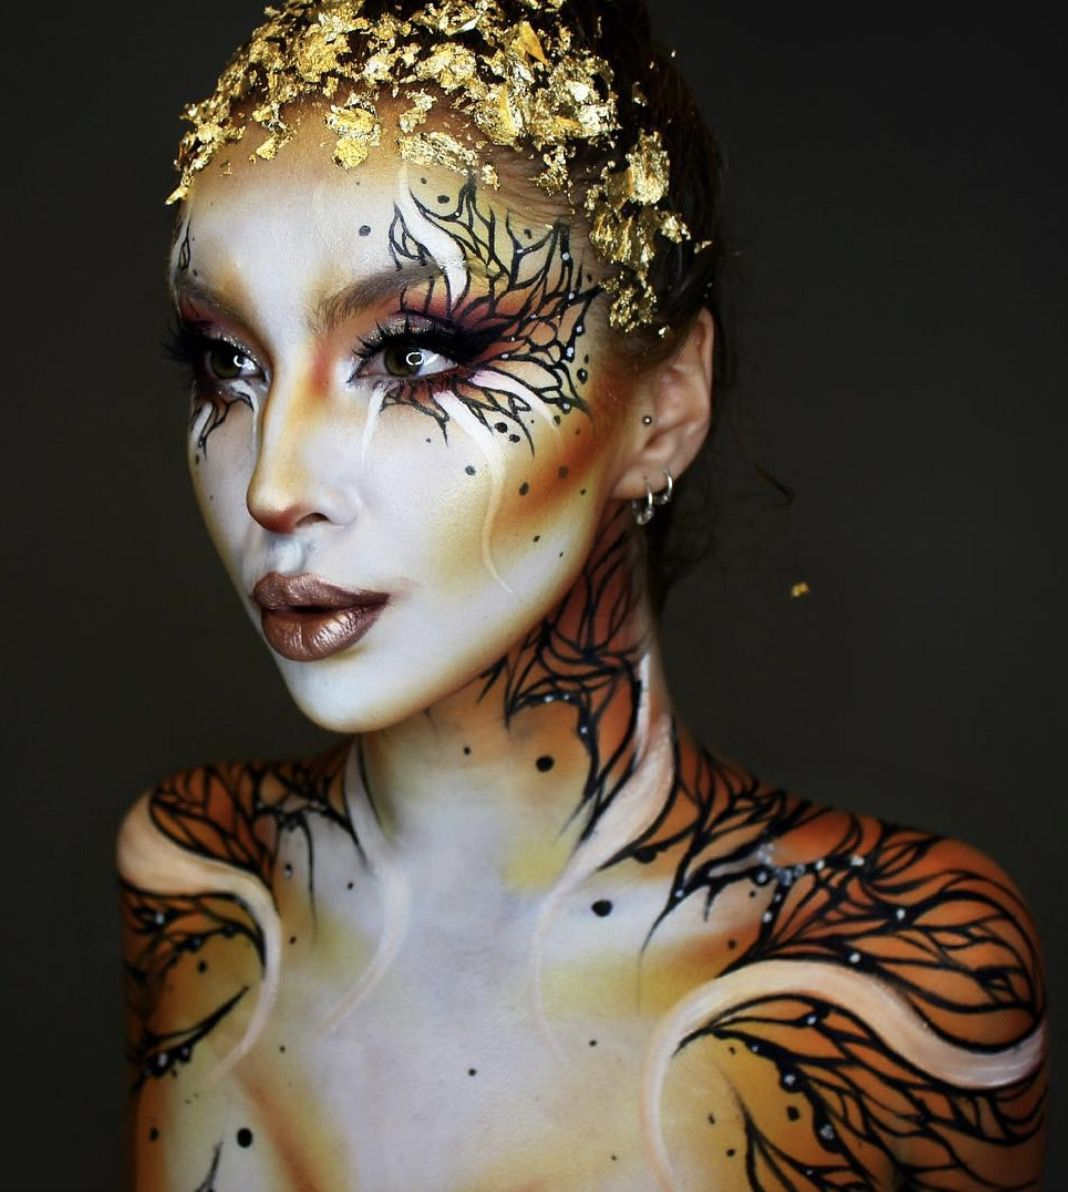 41 Most Jaw-Dropping Halloween Makeup Ideas That Are Still Pretty: Bambi Animal Makeup / Click though to see more awe inspiring pretty Halloween makeup looks, gorgeous Halloween makeup and Halloween costumes. #halloweenmakeup #halloweenmakeuppretty #halloweencostumes #halloweenmakeupinspo #animalmakeup #bambimakeup